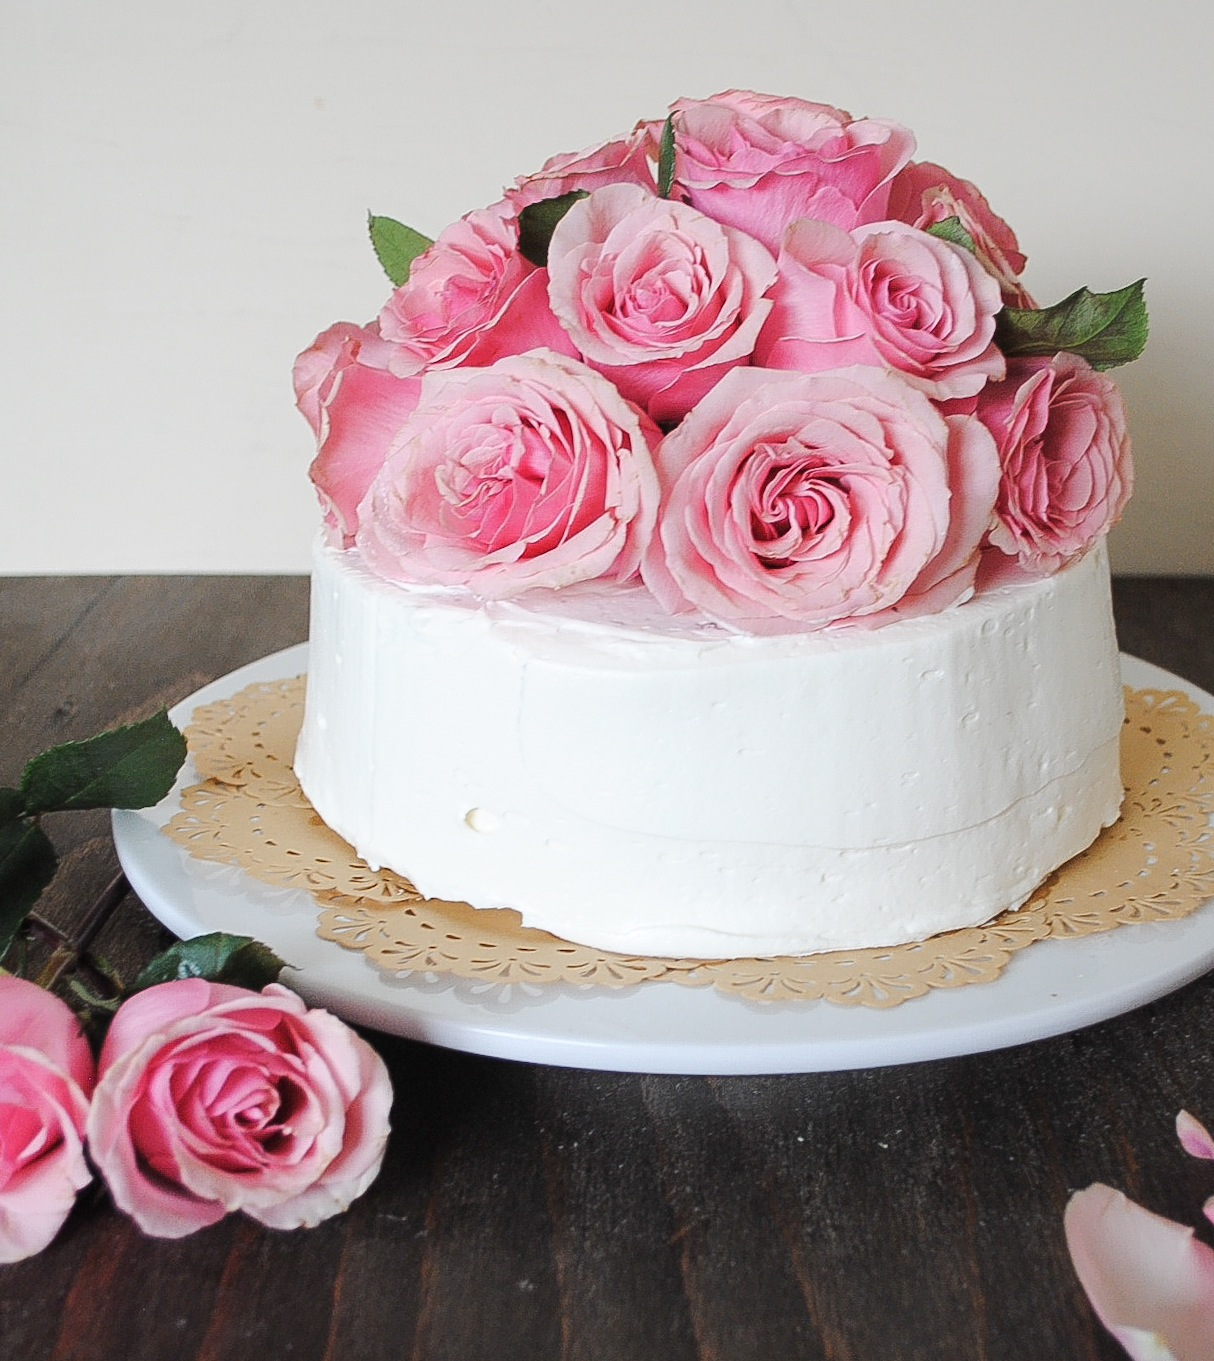 Birthday Cake For Women 10 Happy Birthday Cakes For Women Rose Photo Happy Birthday Cake